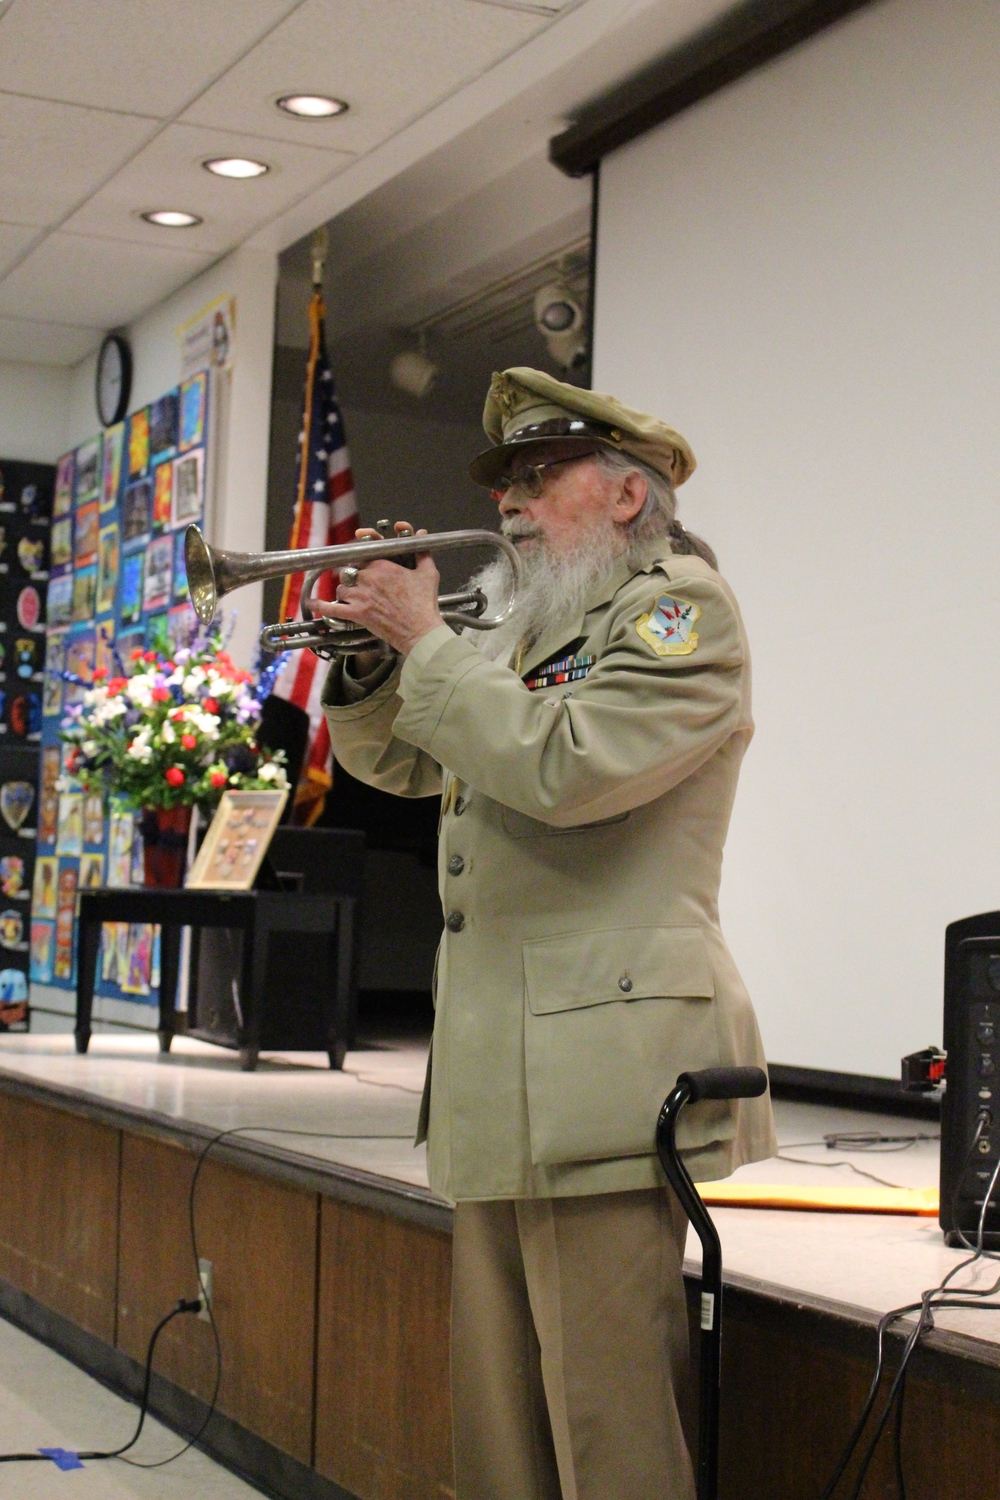 William Thomas, Jr., a B-17 pilot in the U.S. Army Corps during WWII, plays 'Taps' at the Veterans Testimonial Project at Half Hollow Hills Community Library on Saturday.